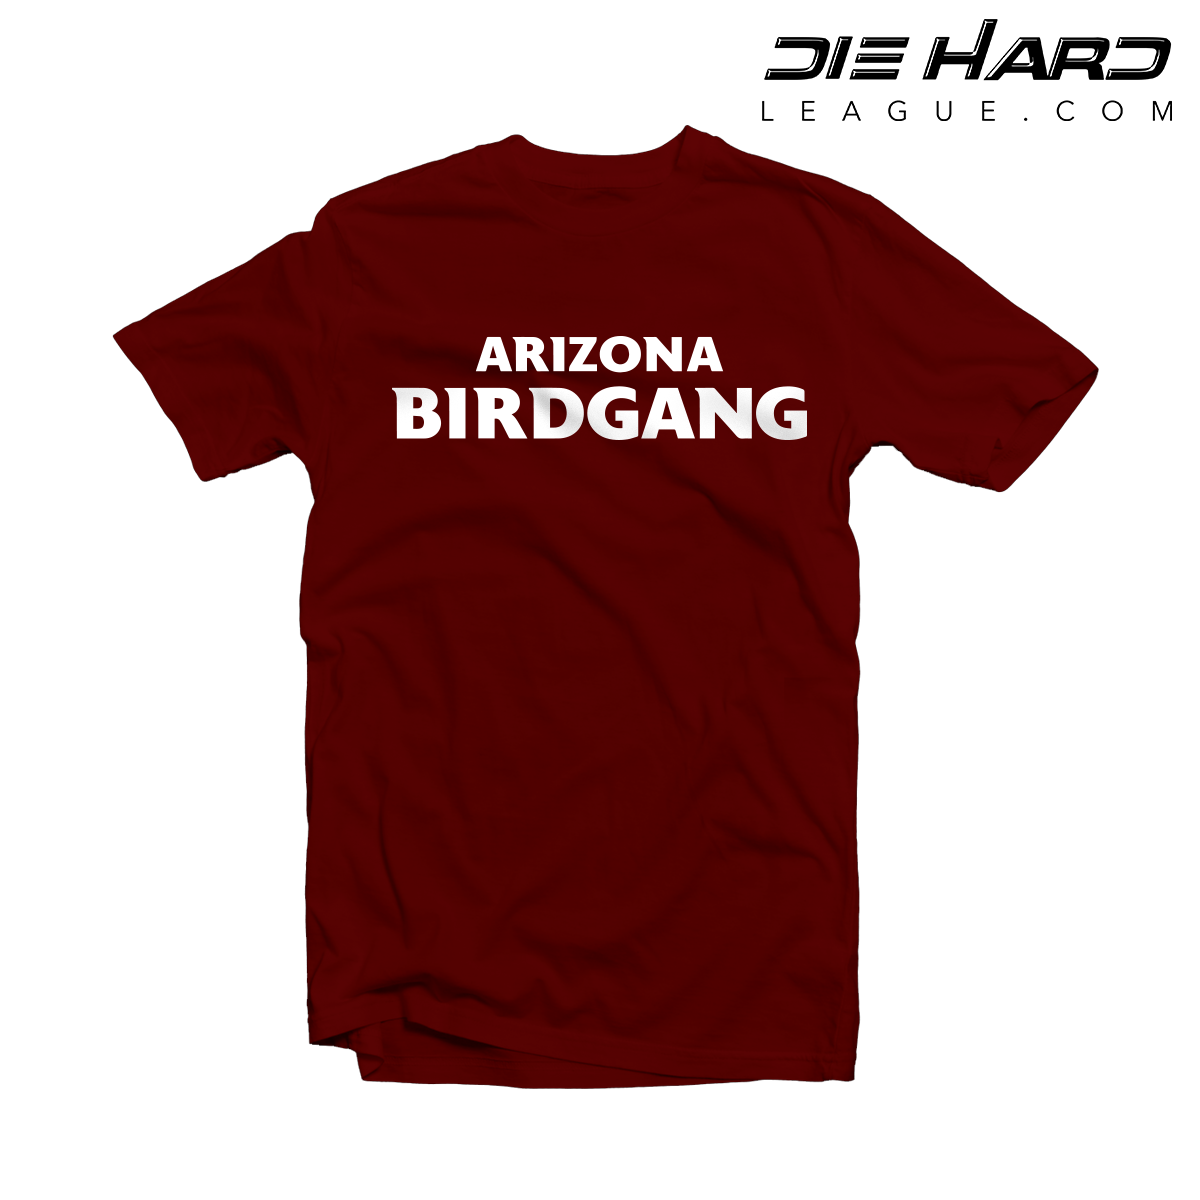 finest selection 90d02 9b9fc Arizona Cardinals T-Shirt - BIRD GANG Cardinal Tee